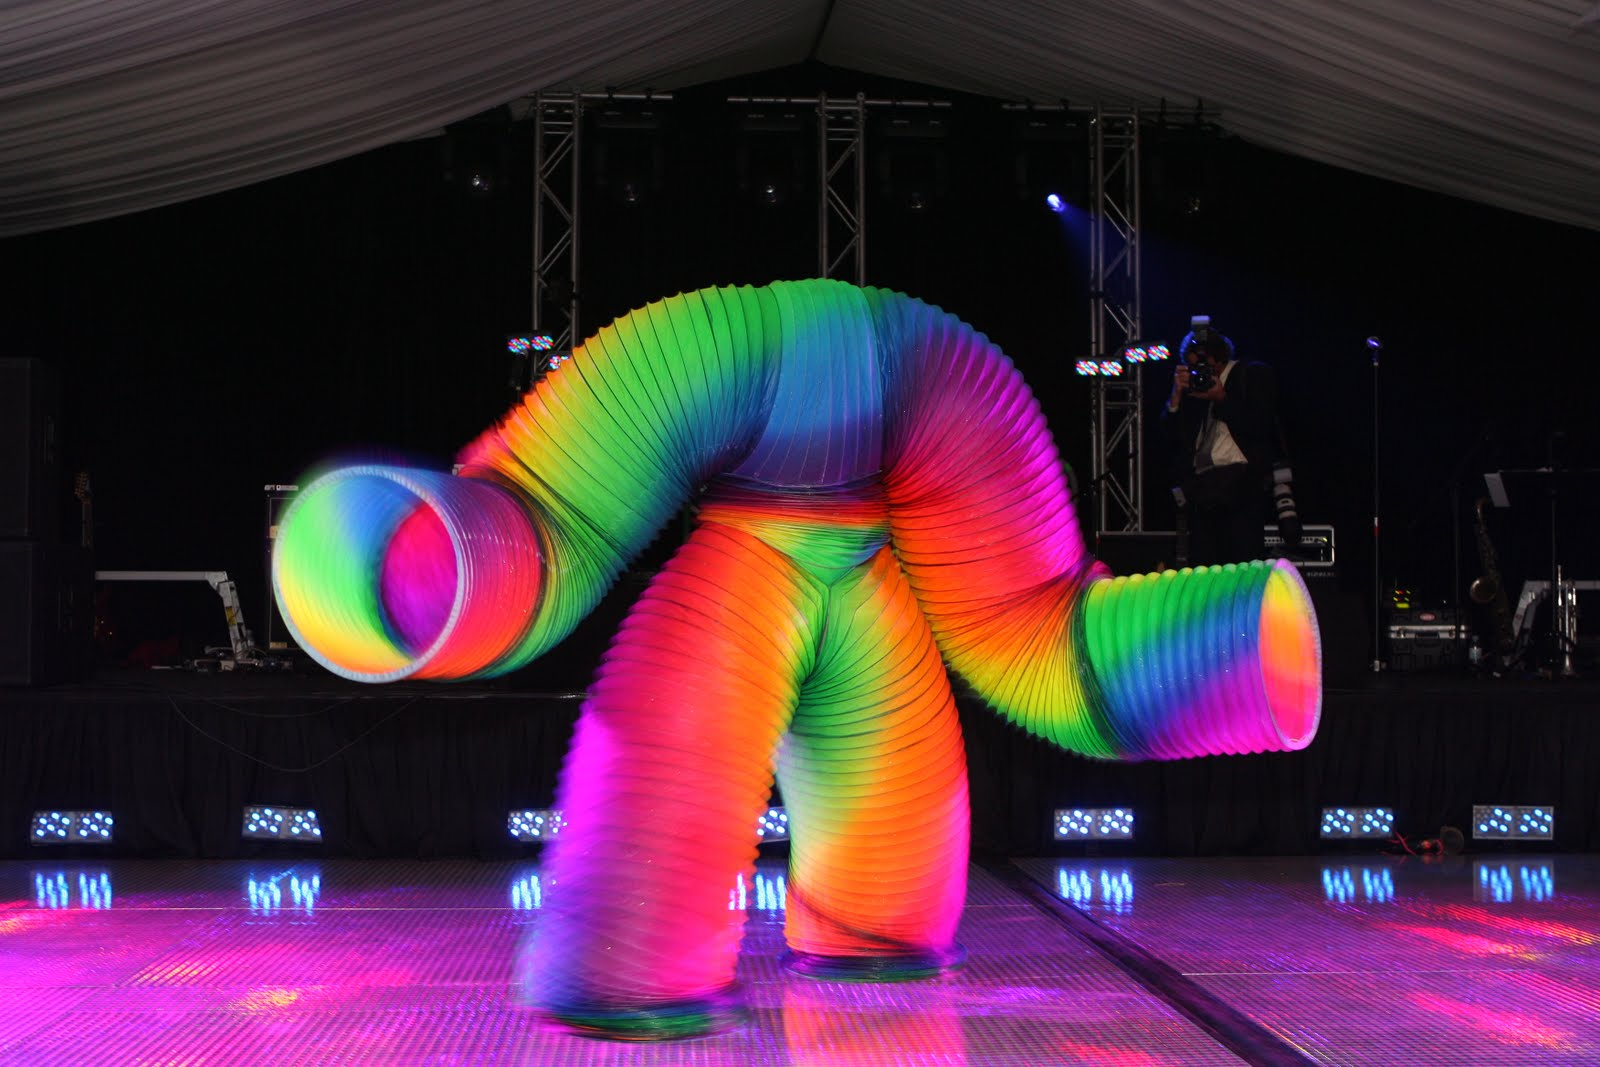 Holy mother of late Christmas shopping, it's a $1m human slinky outfit